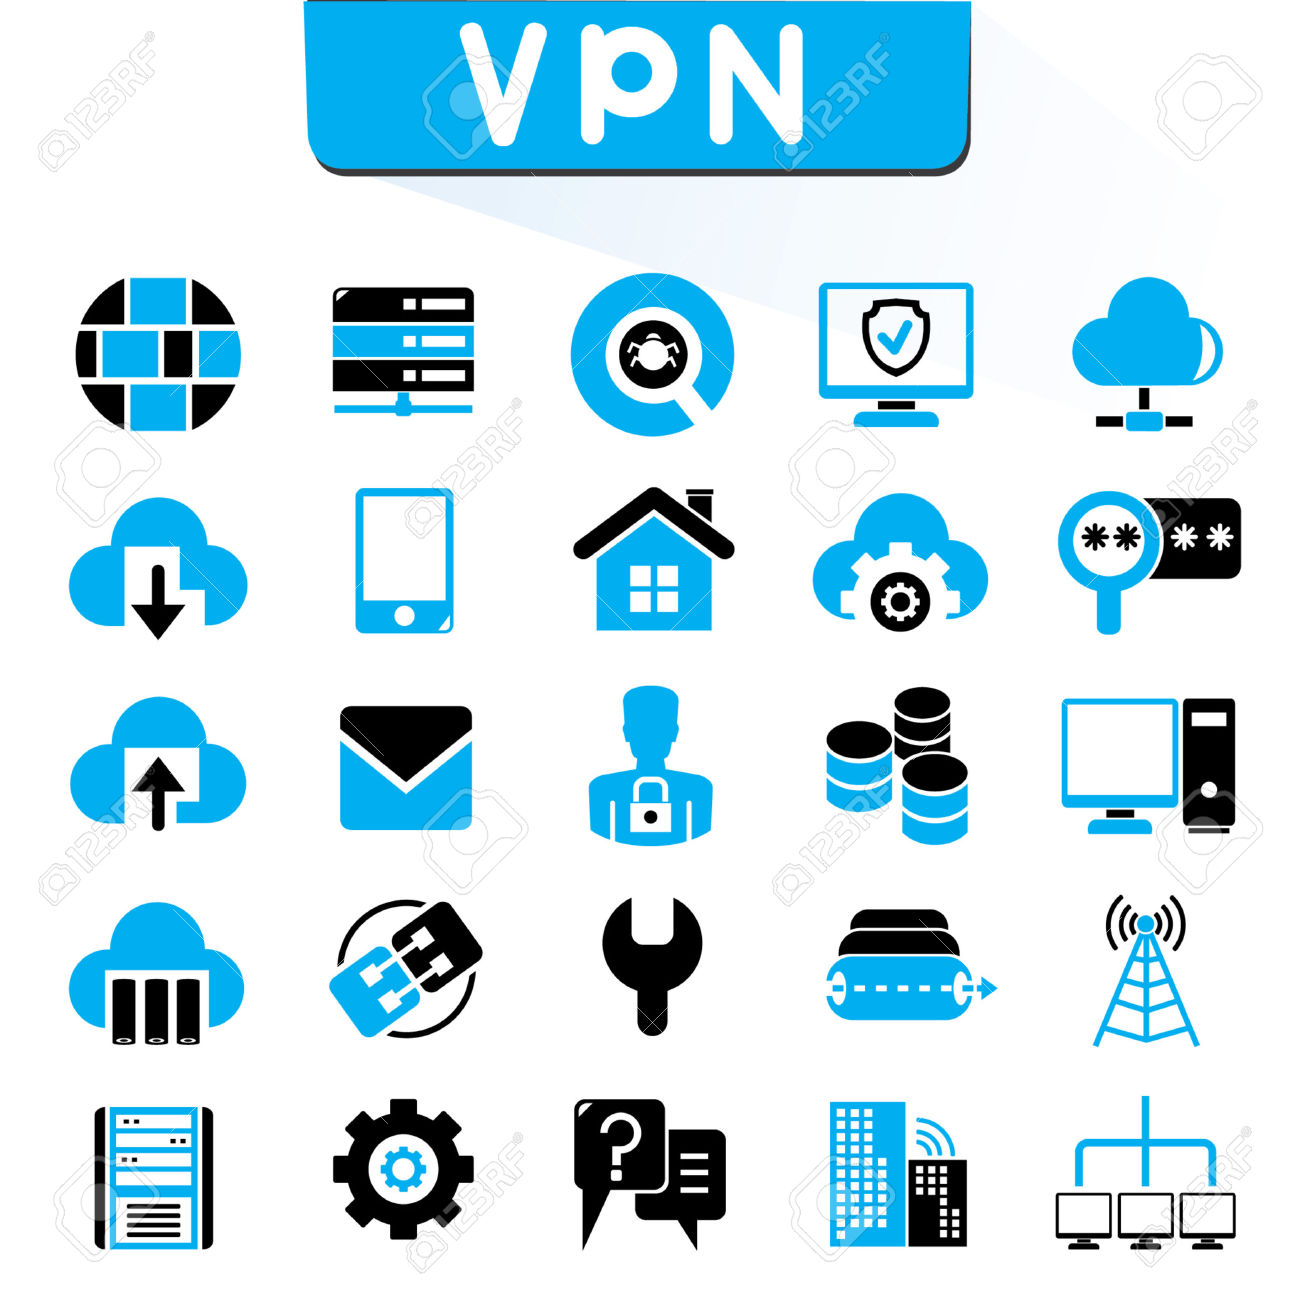 VPN, Virtual Private Network Icons, Blue Color Theme Royalty Free.